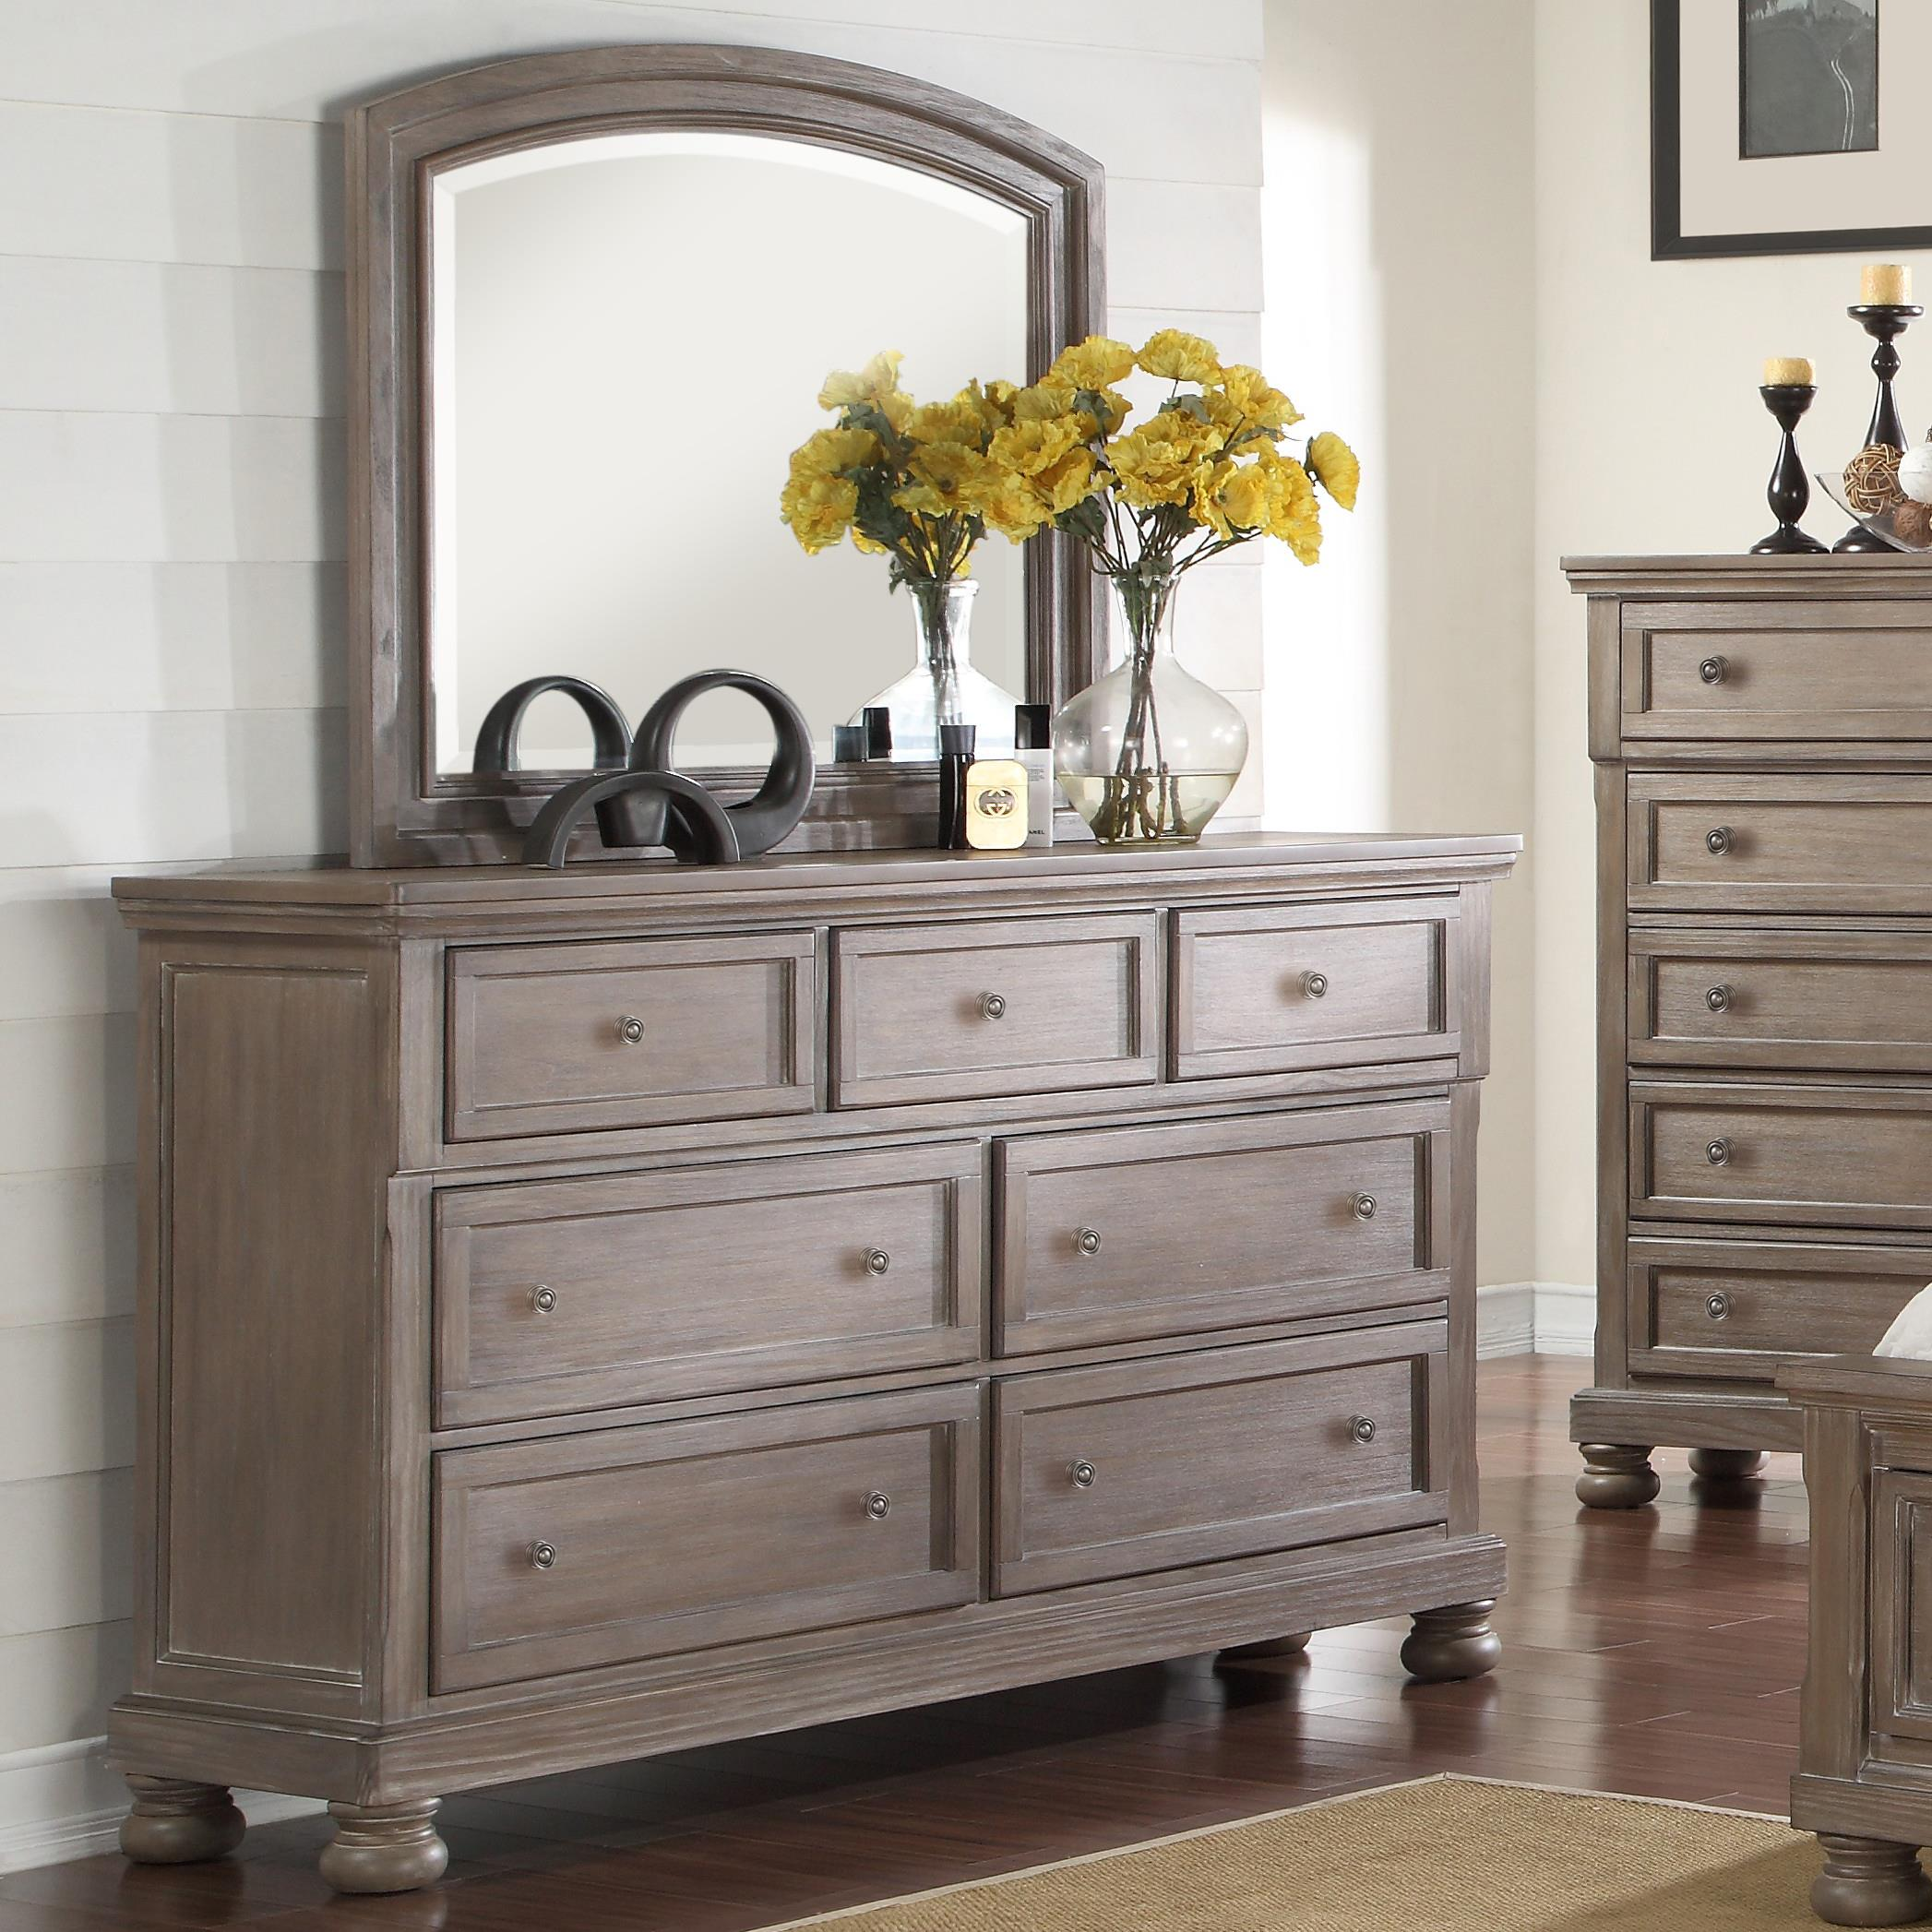 Allegra Dresser & Mirror Set by New Classic at Rife's Home Furniture